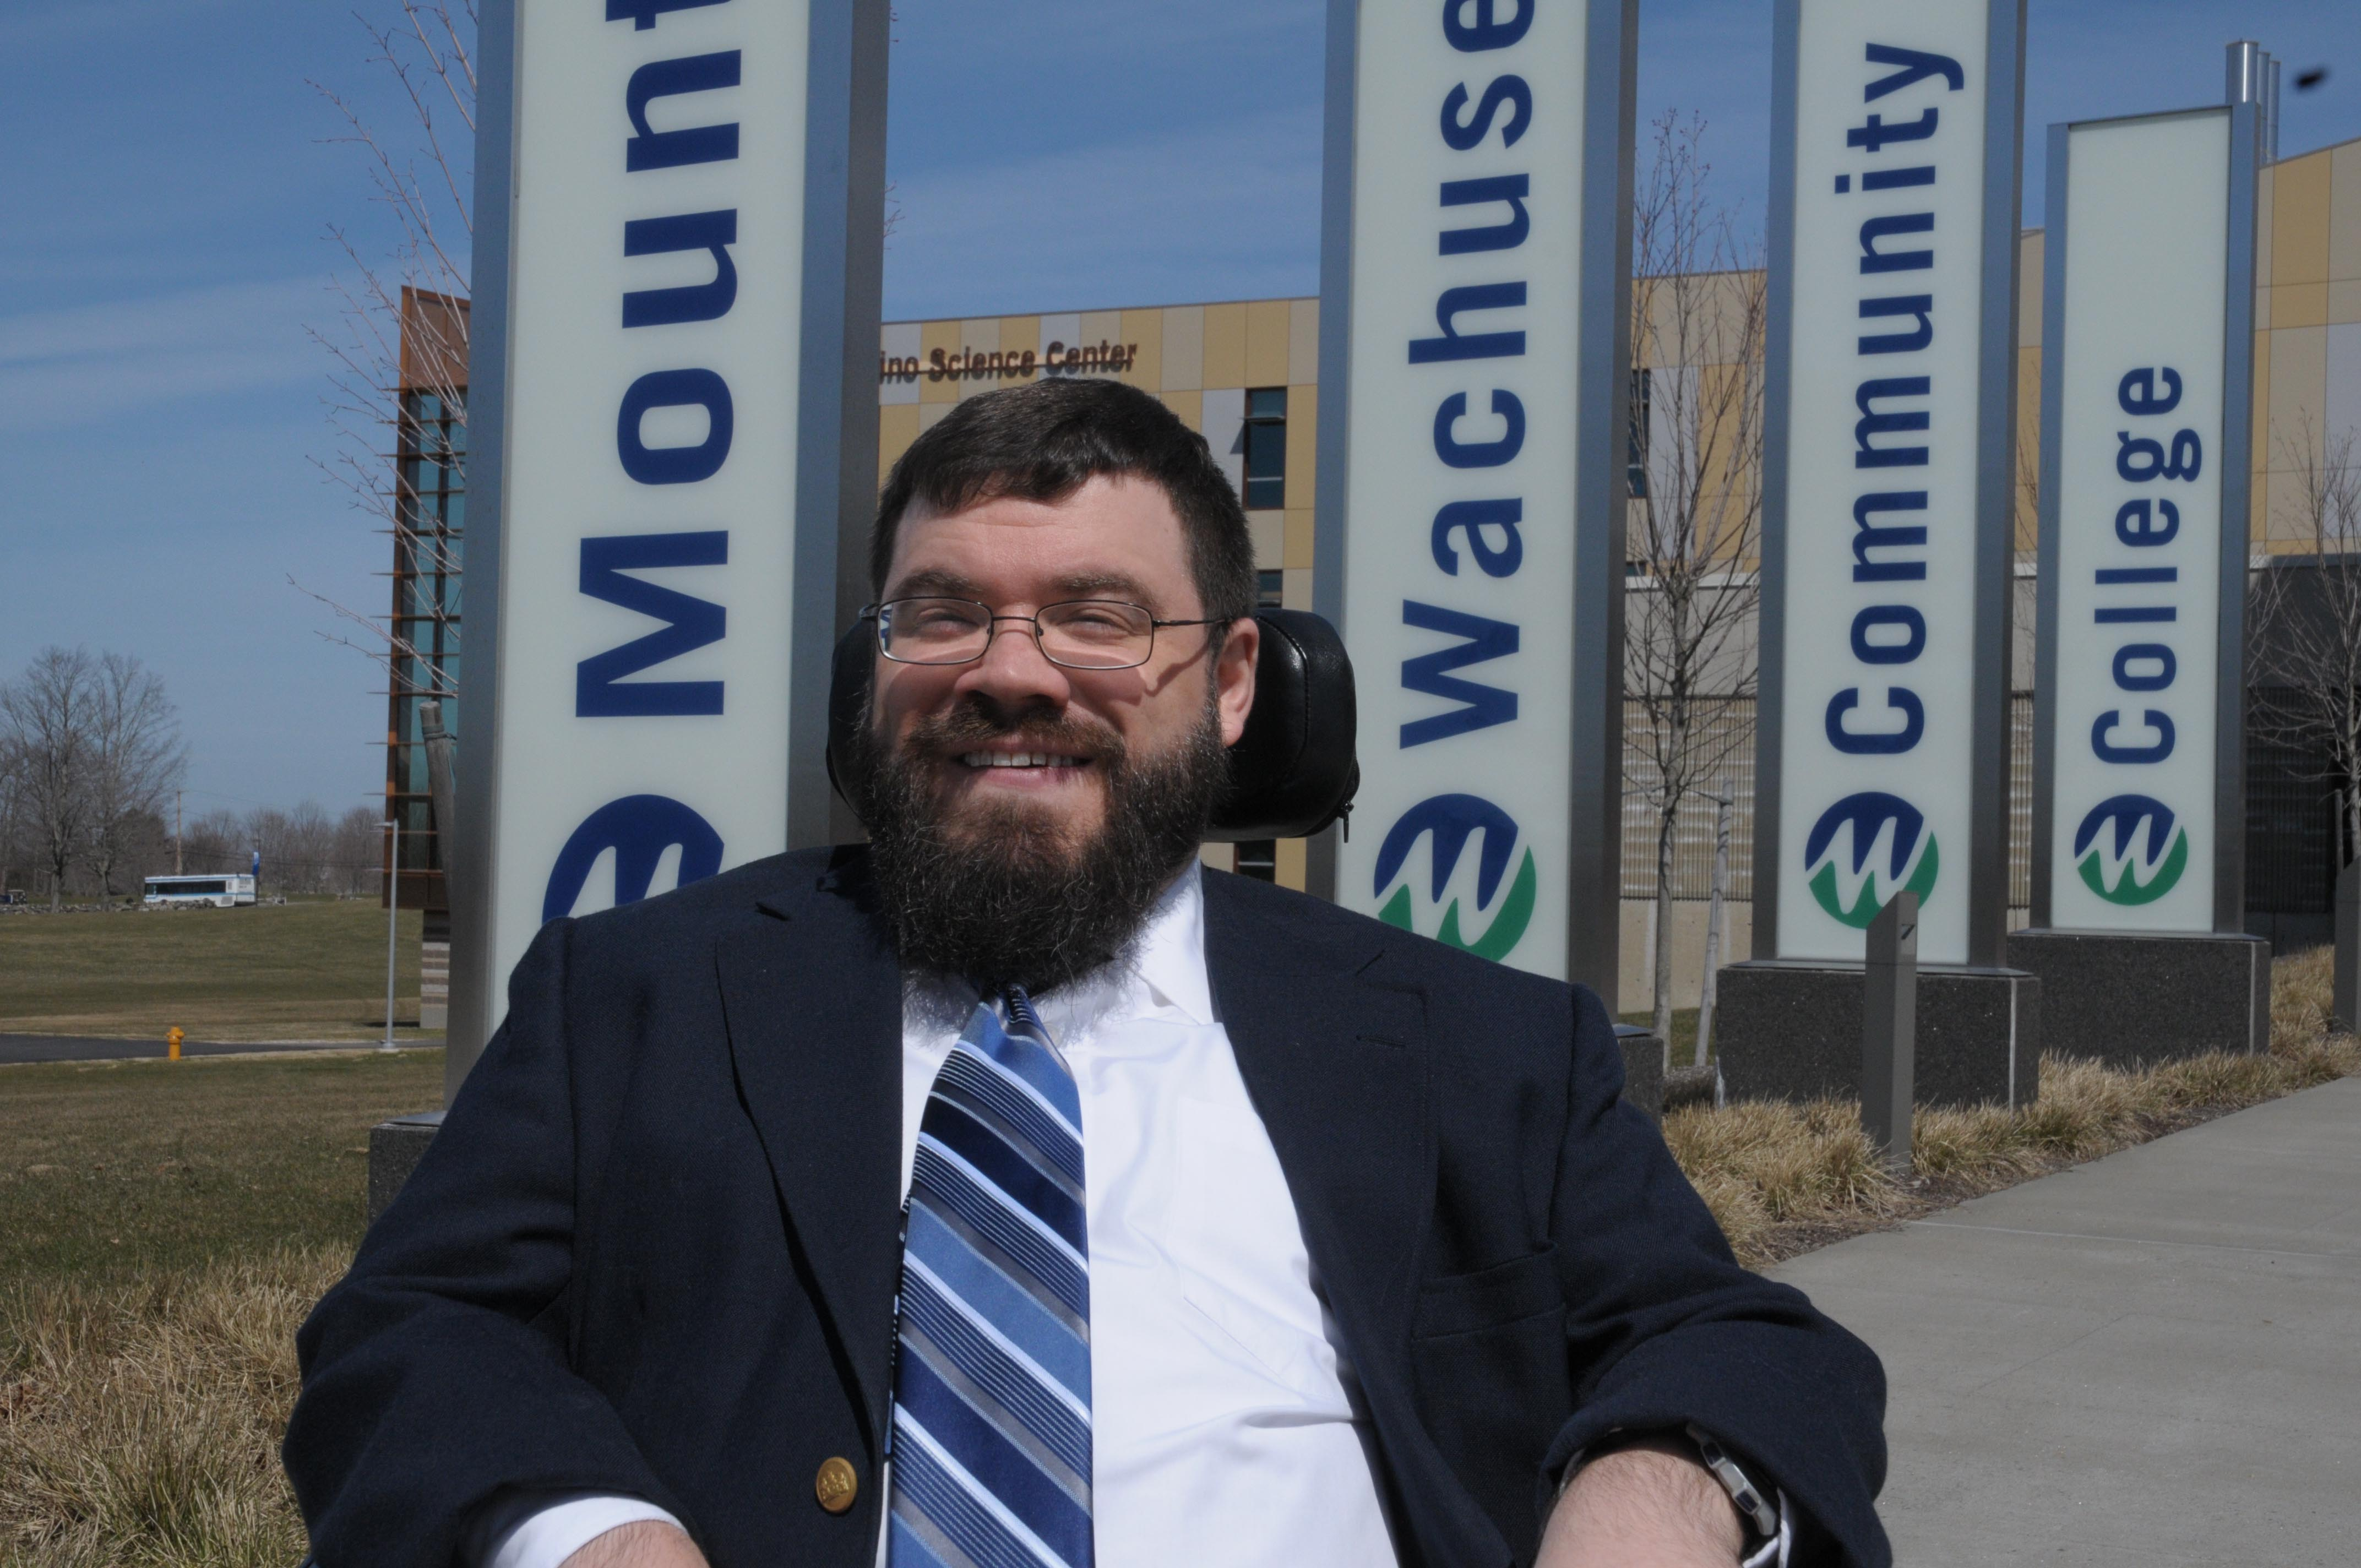 Nate Johnson sits in front of signs outside of Mount Wachusett Community College.